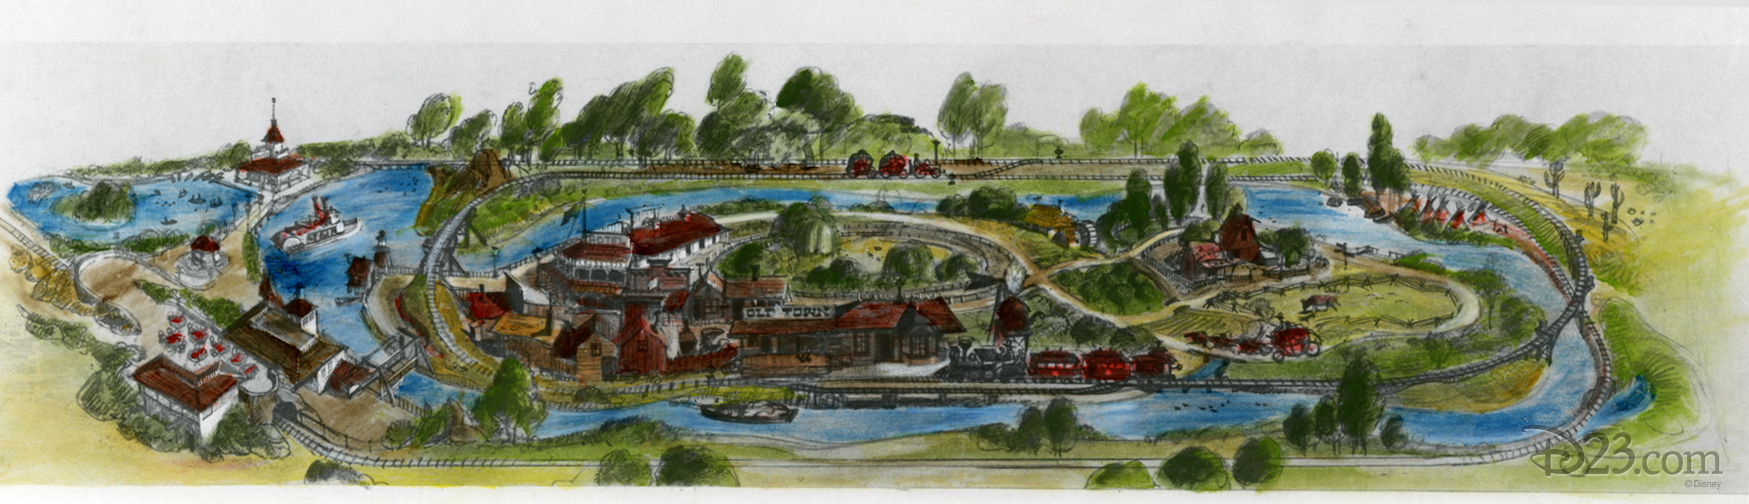 Concept art for a railroad and Mississippi Steamboat in Disneyland Burbank